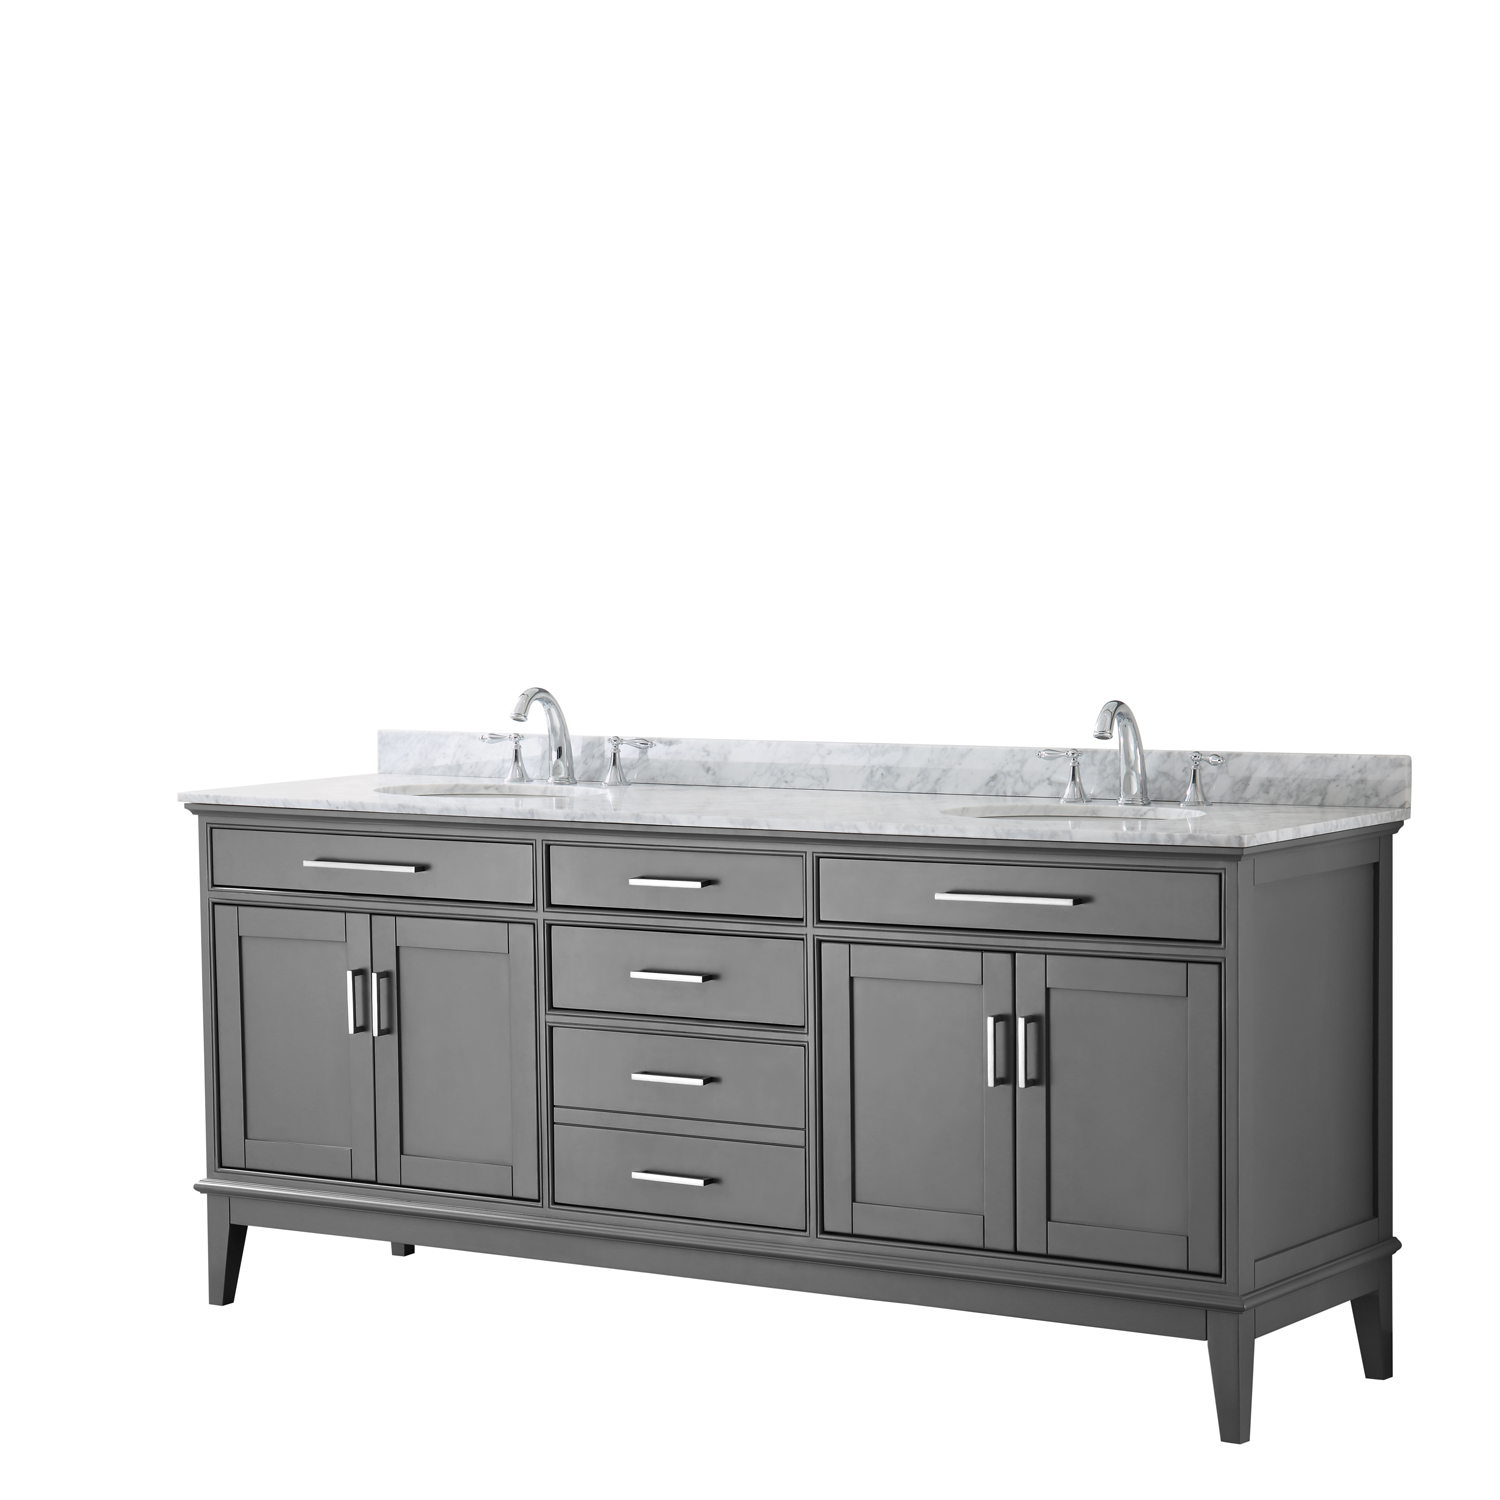 "Contemporary 80"" Double Bathroom Vanity in Dark Gray, White Carrara Marble Countertop with Undermount Sinks, and Mirror Options"